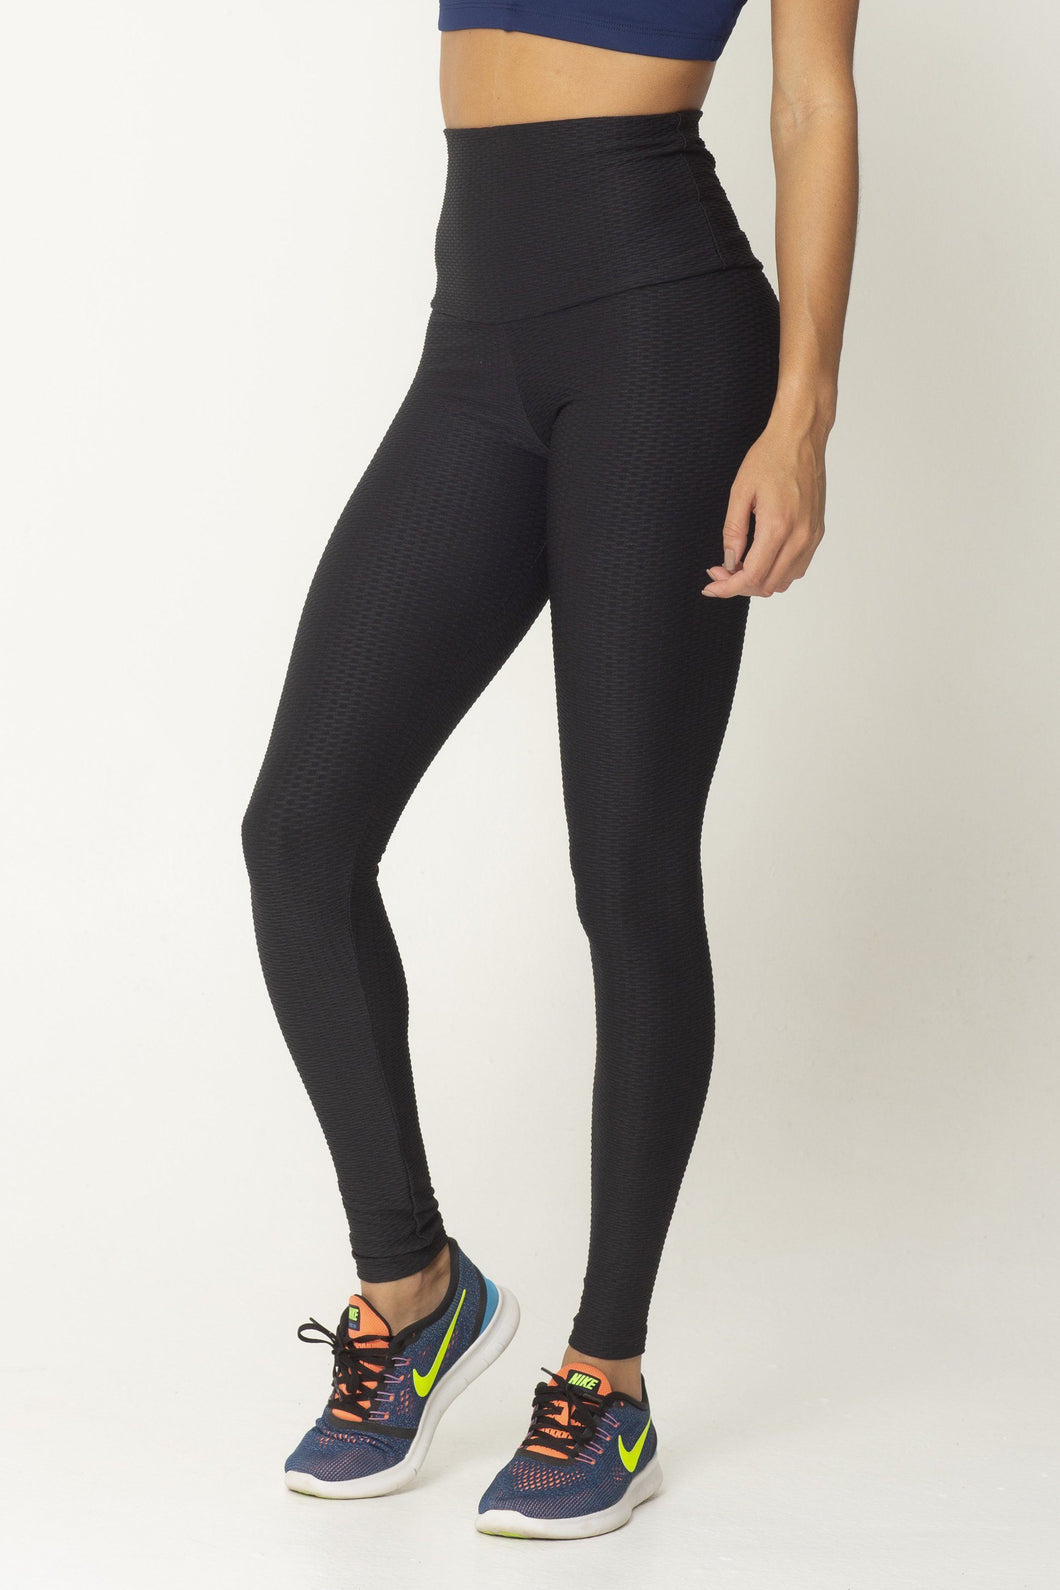 Jacar Detox High Up Legging